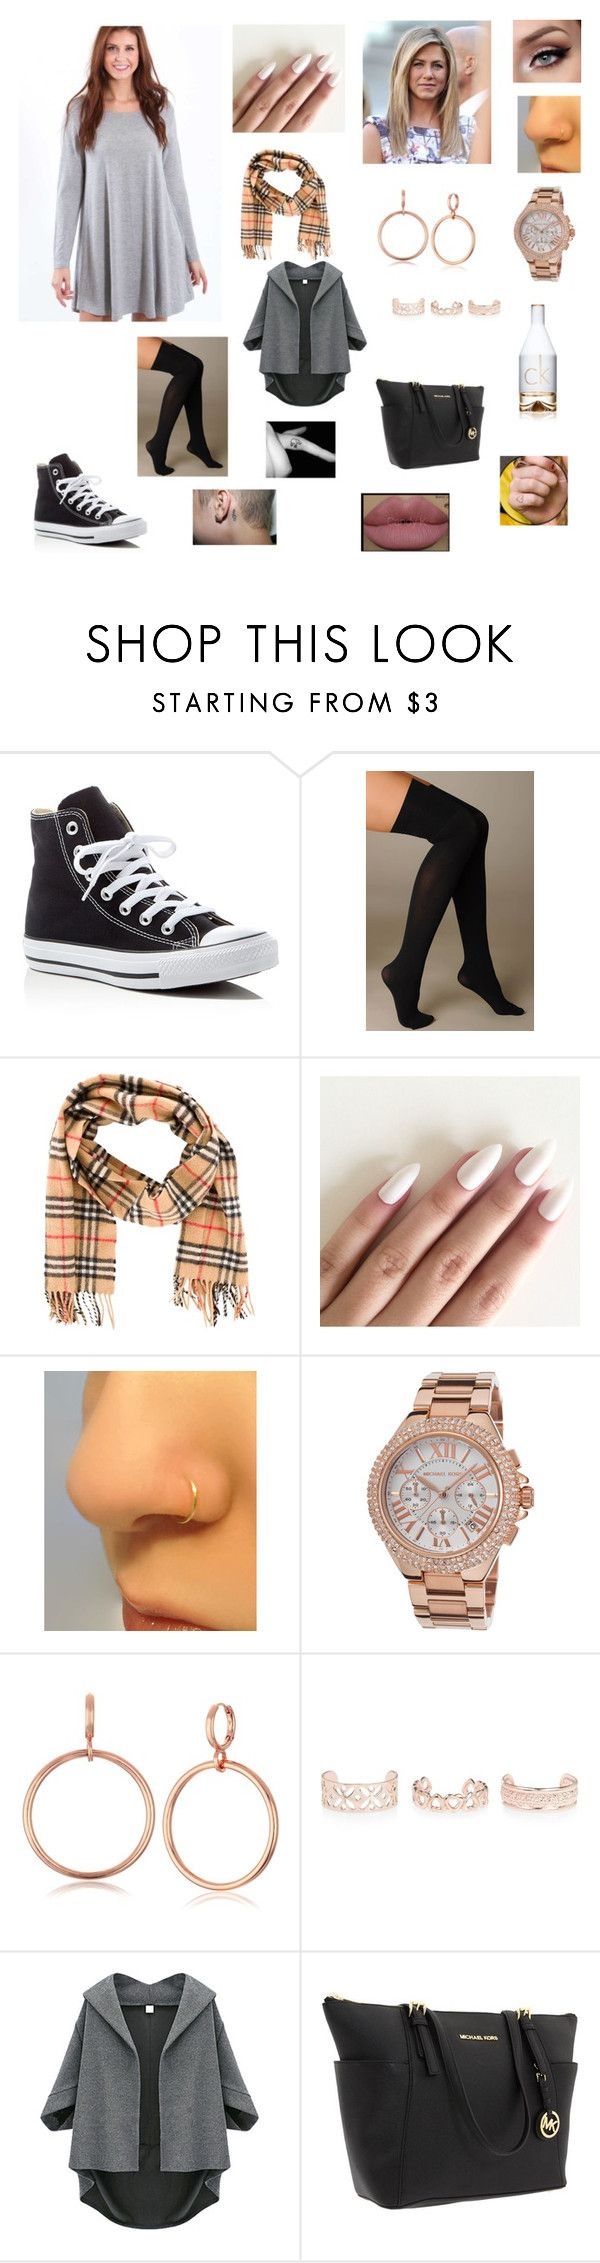 Untitled #225 by katrine-frid on Polyvore featuring Hue, Converse, Michael Kors, Vince Camuto, New Look, Burberry and Calvin Klein